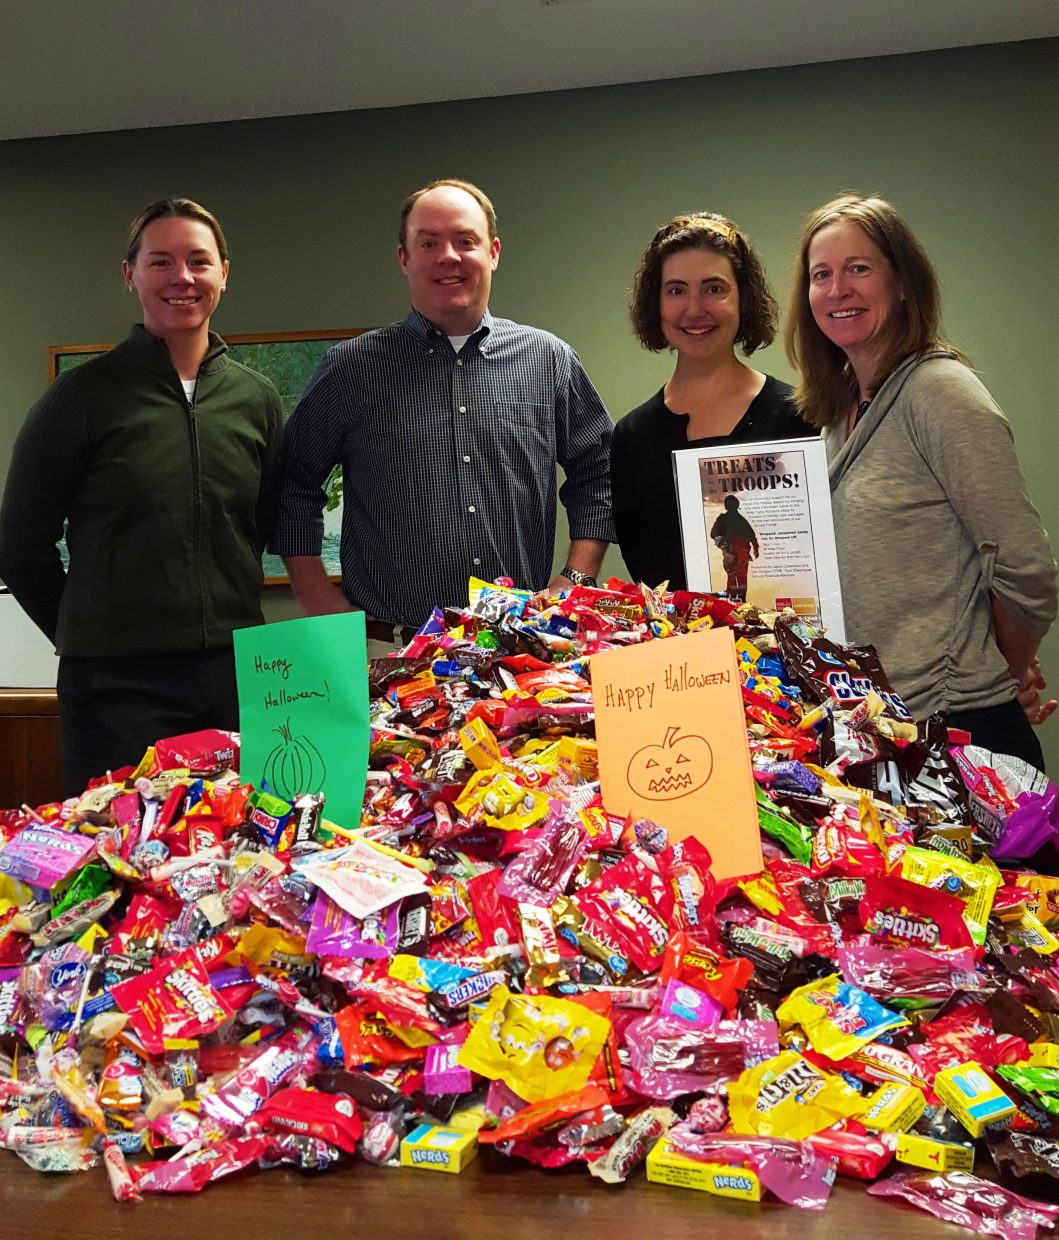 Wells Fargo Financial Advisors in Steamboat Springs hosted Treats for the Troops candy collections. Thanks to the community's generosity, 135 pounds of candy were shipped to soldiers for the holidays. Pictured with the donated candy, from left, are Laura Cusenbary, Dan Sturges, Jennifer Stoddard and Christina Freeman of Wells Fargo Advisors.